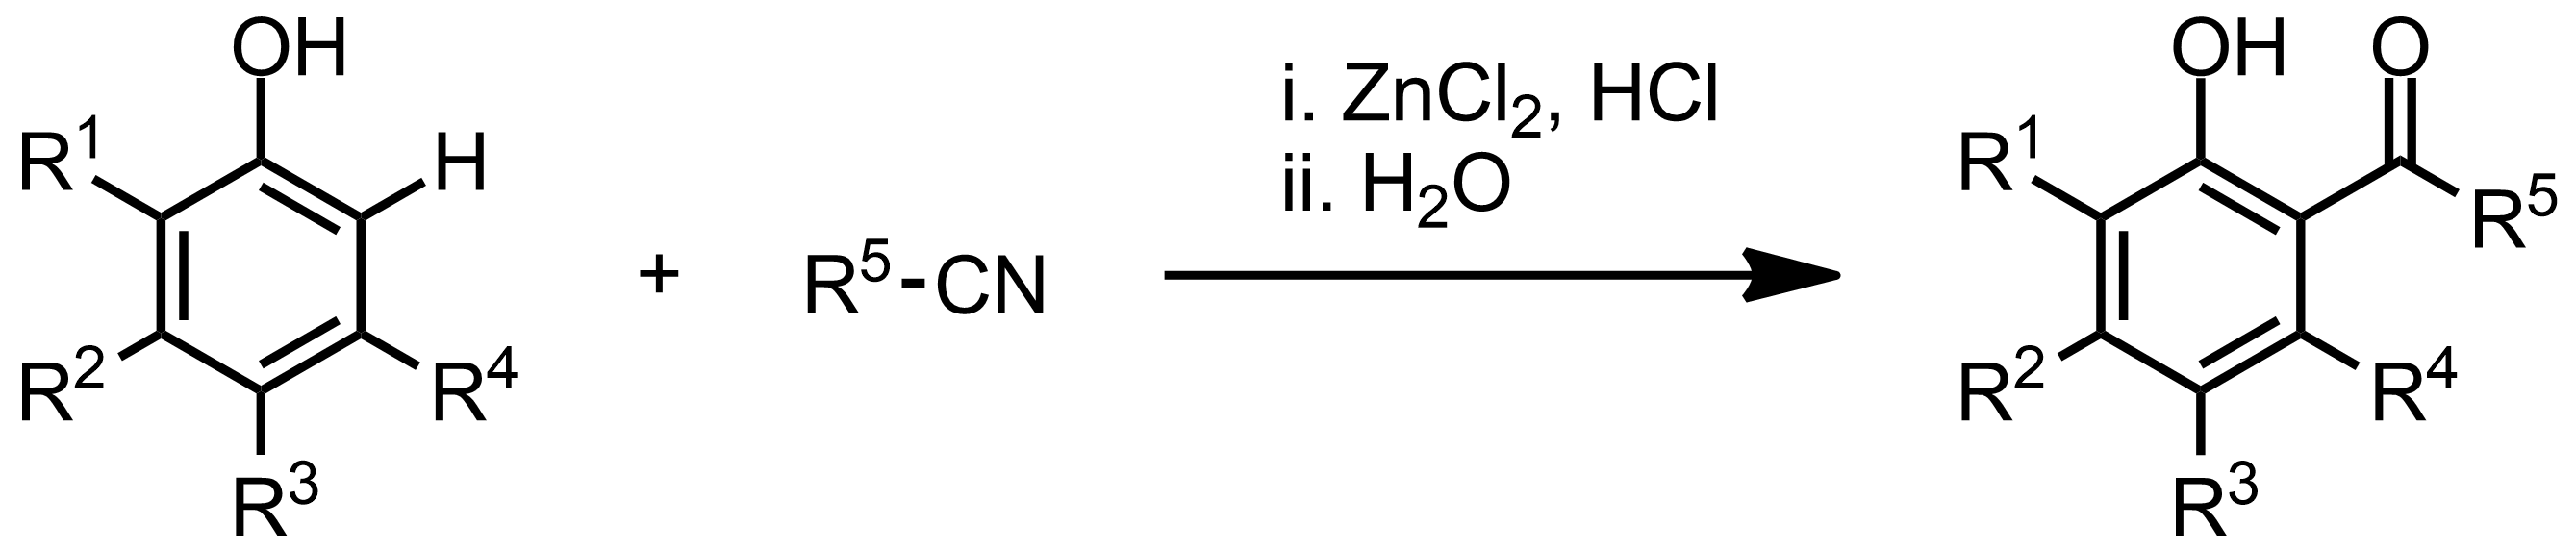 Schematic representation of the Houben-Hoesch Reaction.